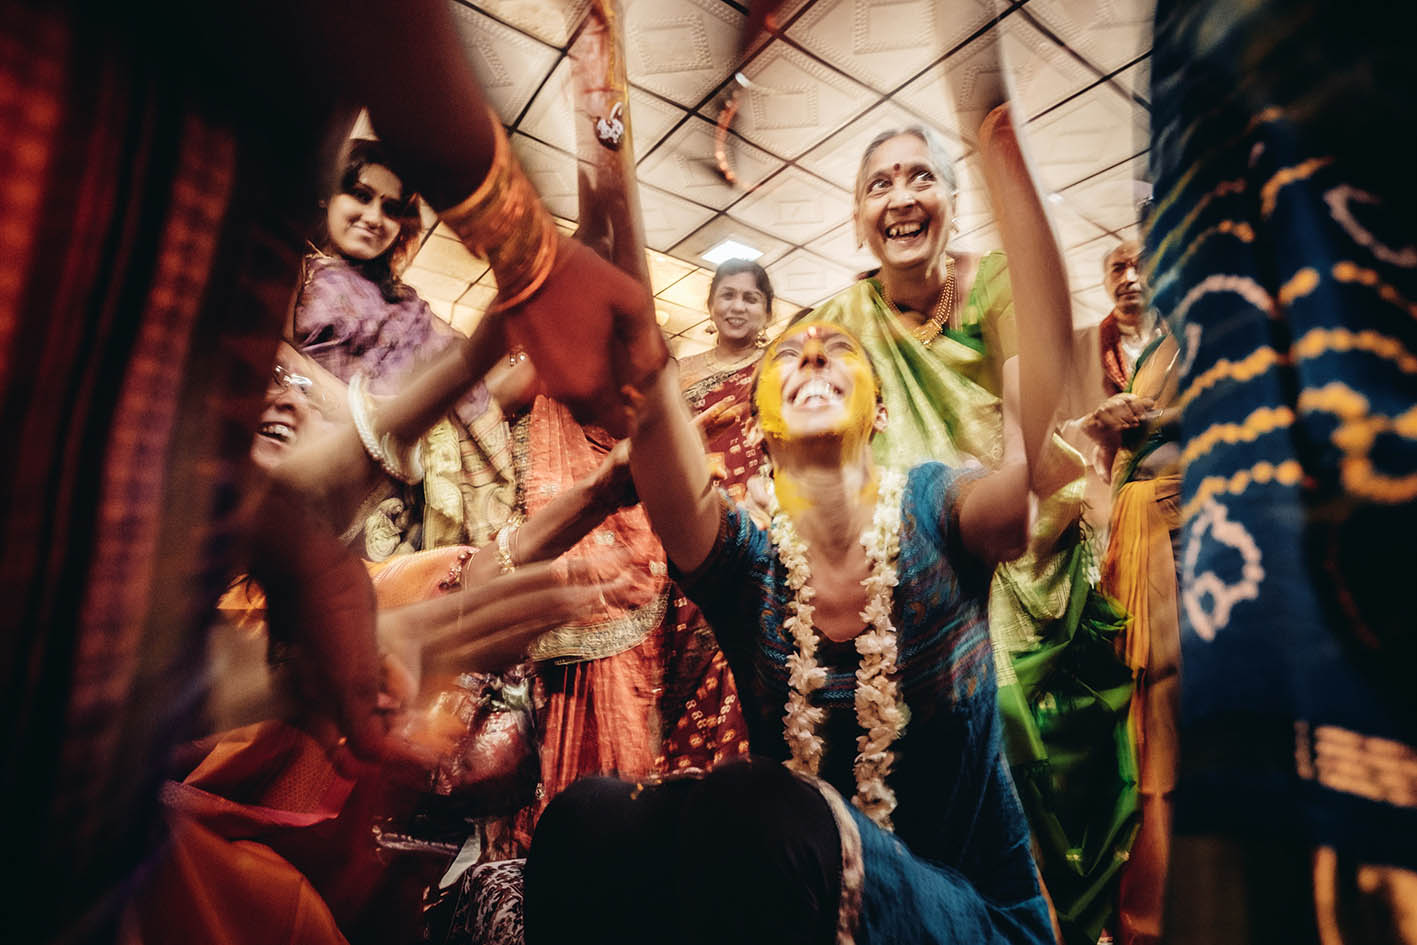 Canvera Wedding Photography: Ace Photographer Chenthil Mohan On Wedding Photography's